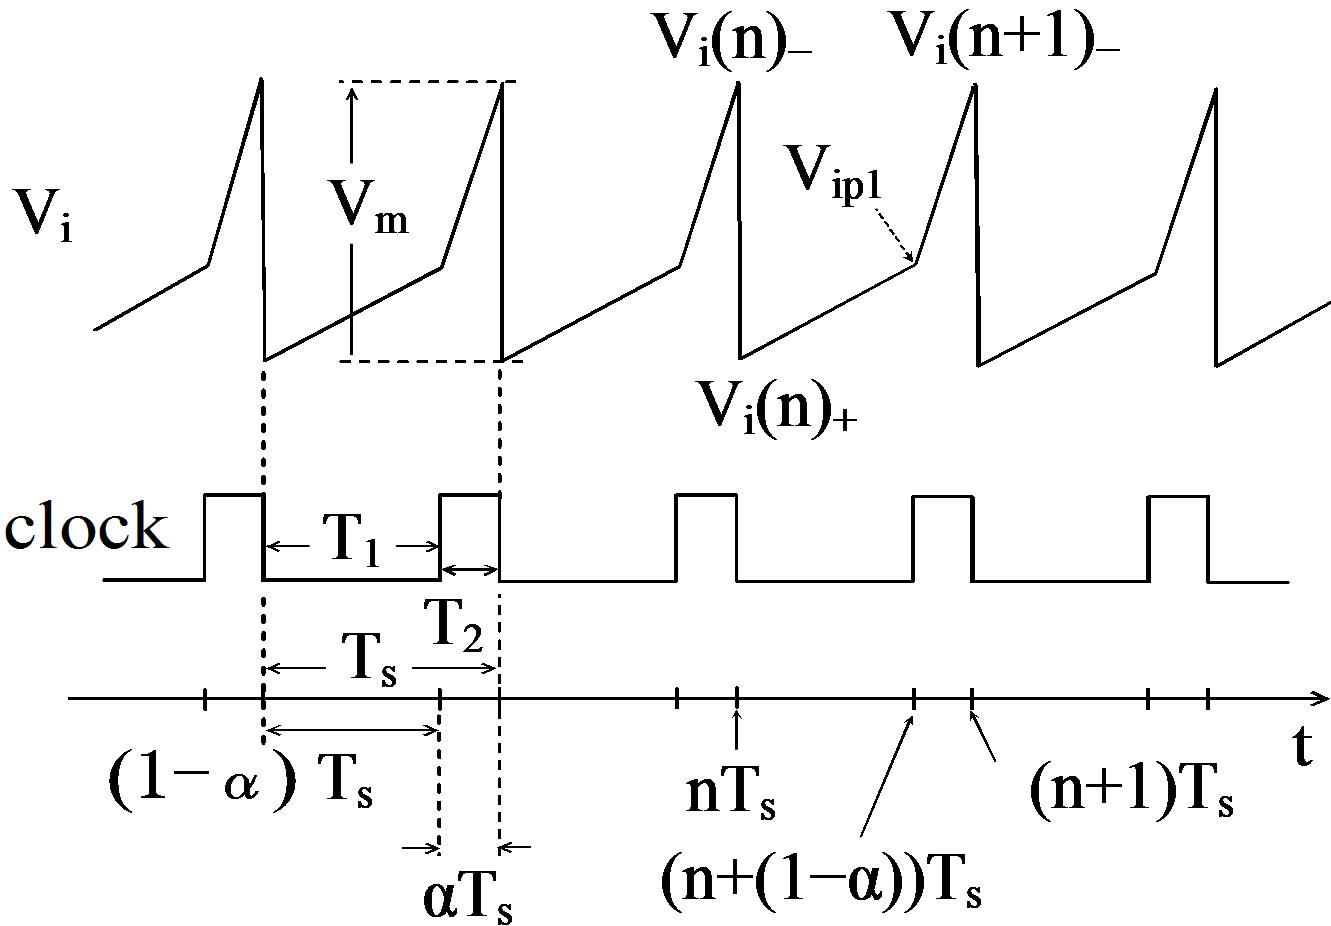 Design Of A Switched Capacitor Negative Feedback Circuit For A Very Low Level Dc Current Amplifier